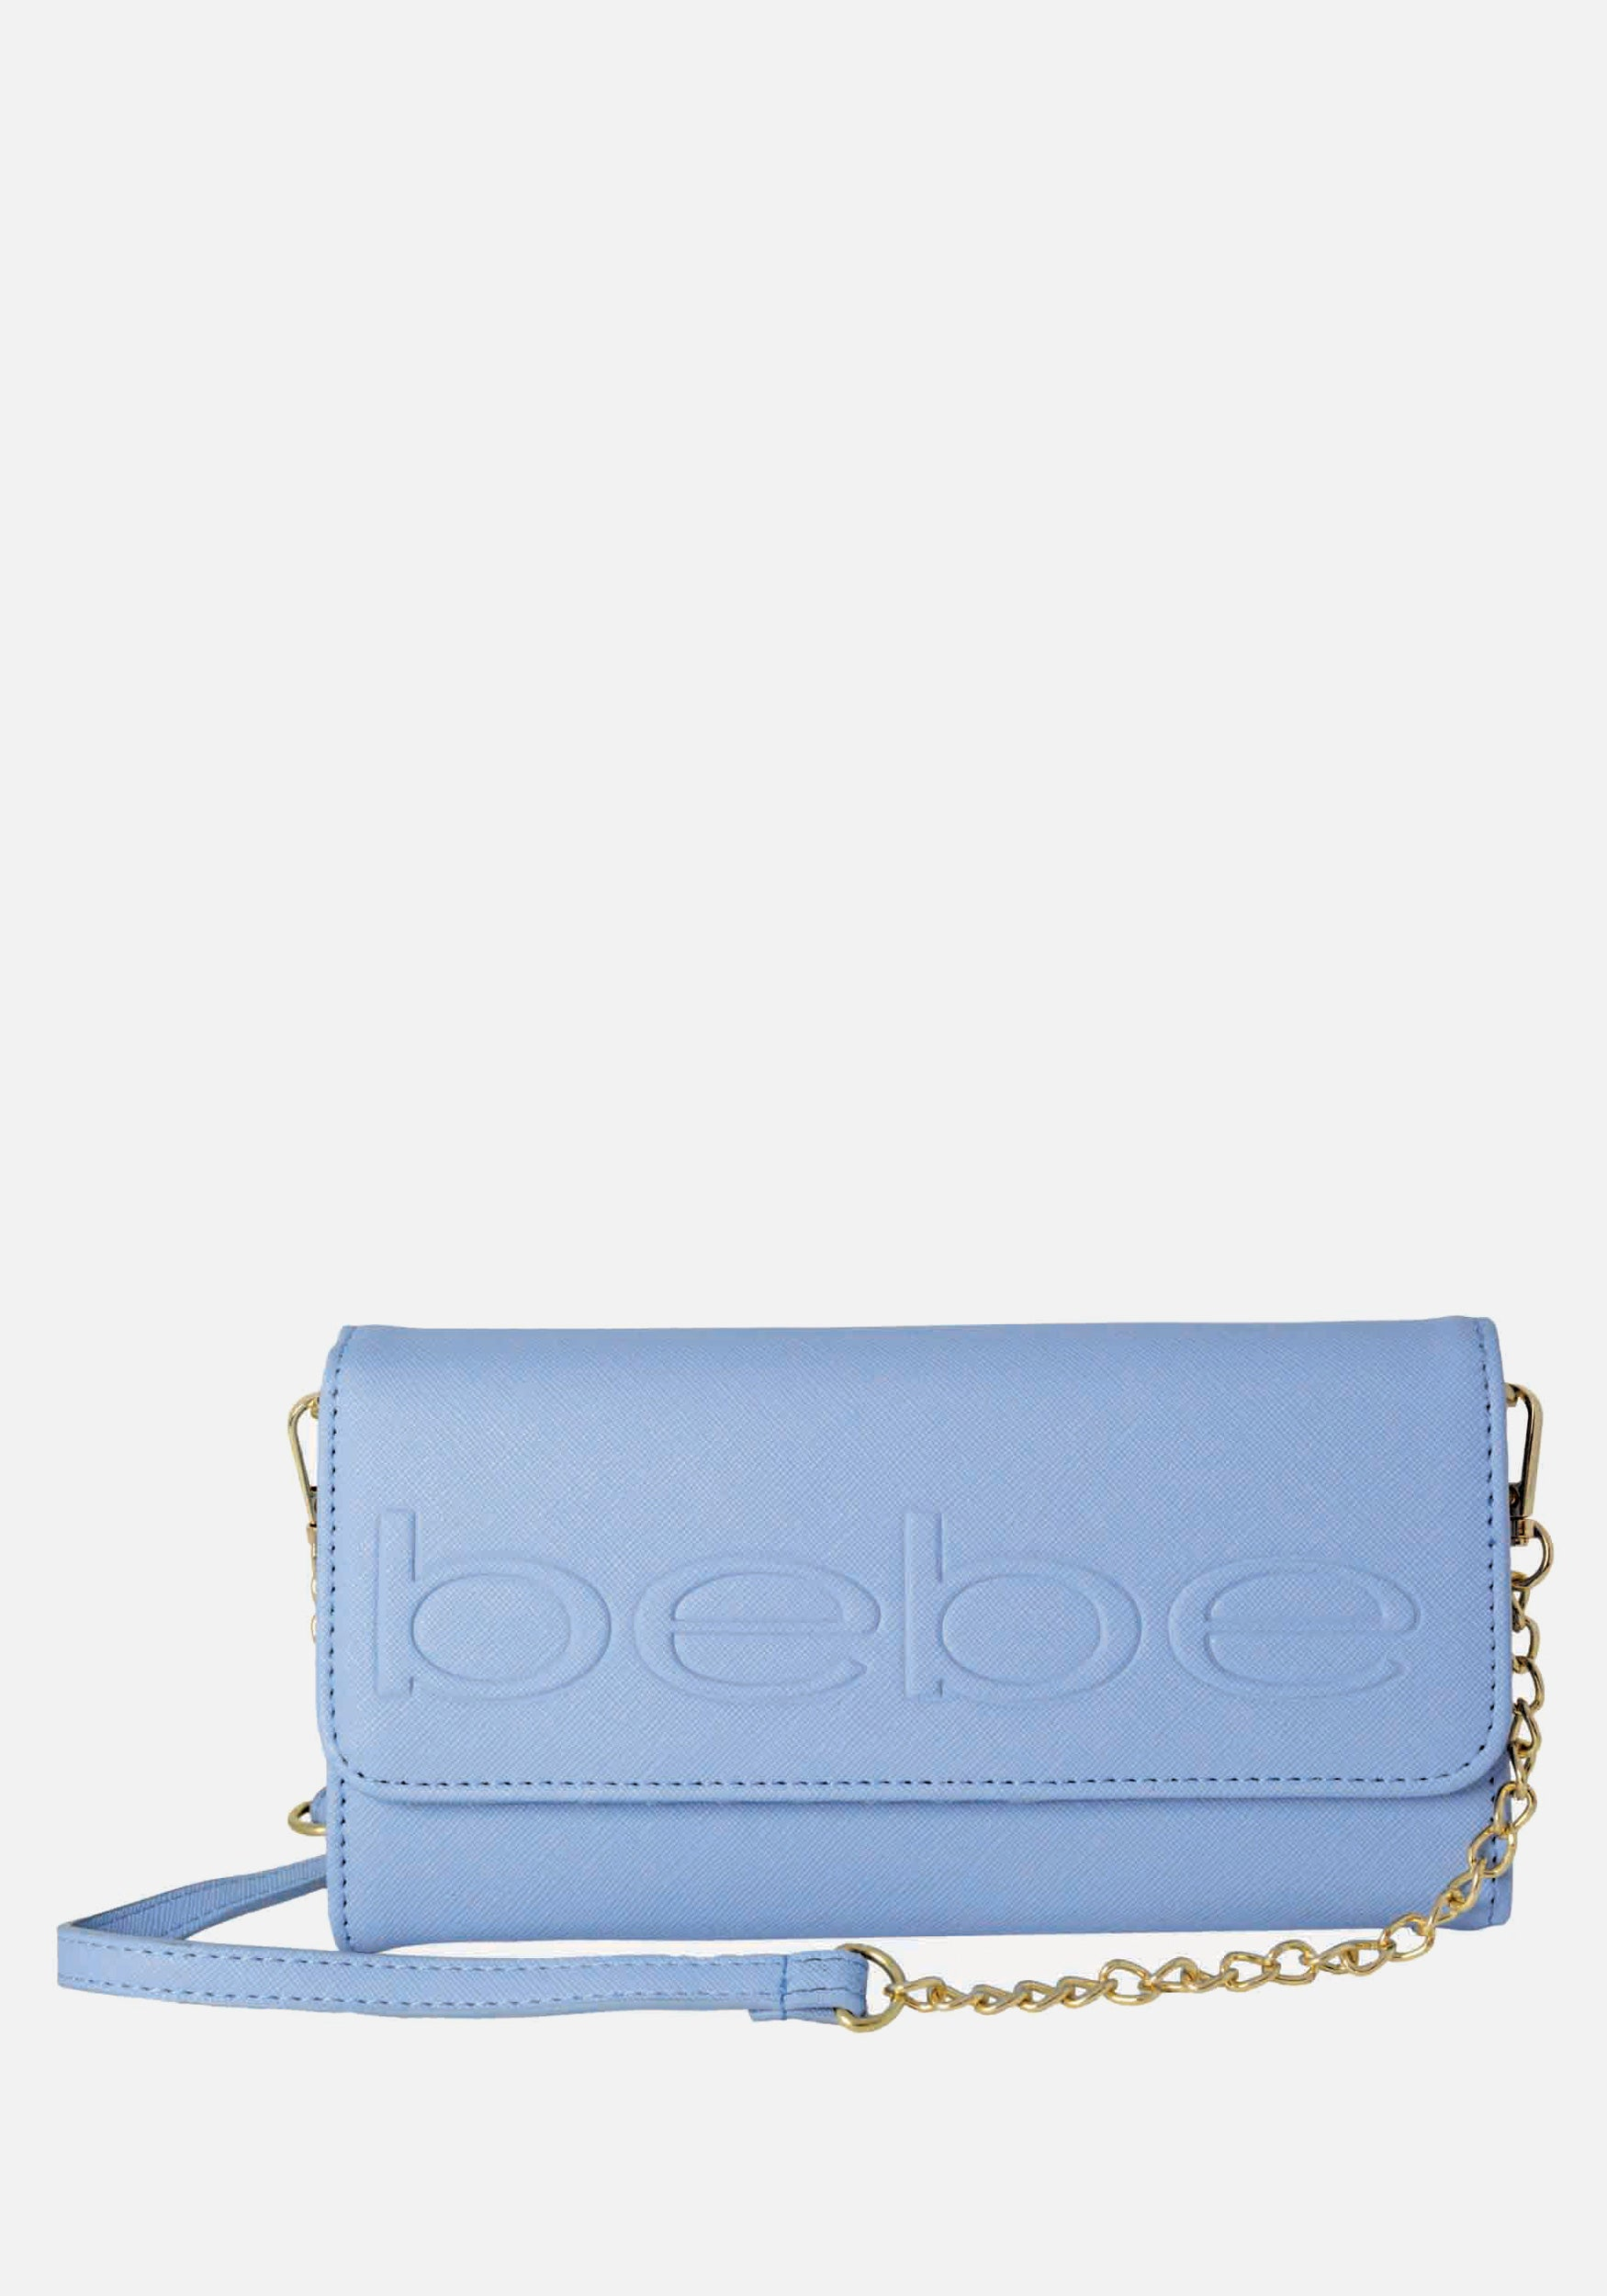 Bebe Women's Lila Phone Wallet Crossbody in Blue Polyester